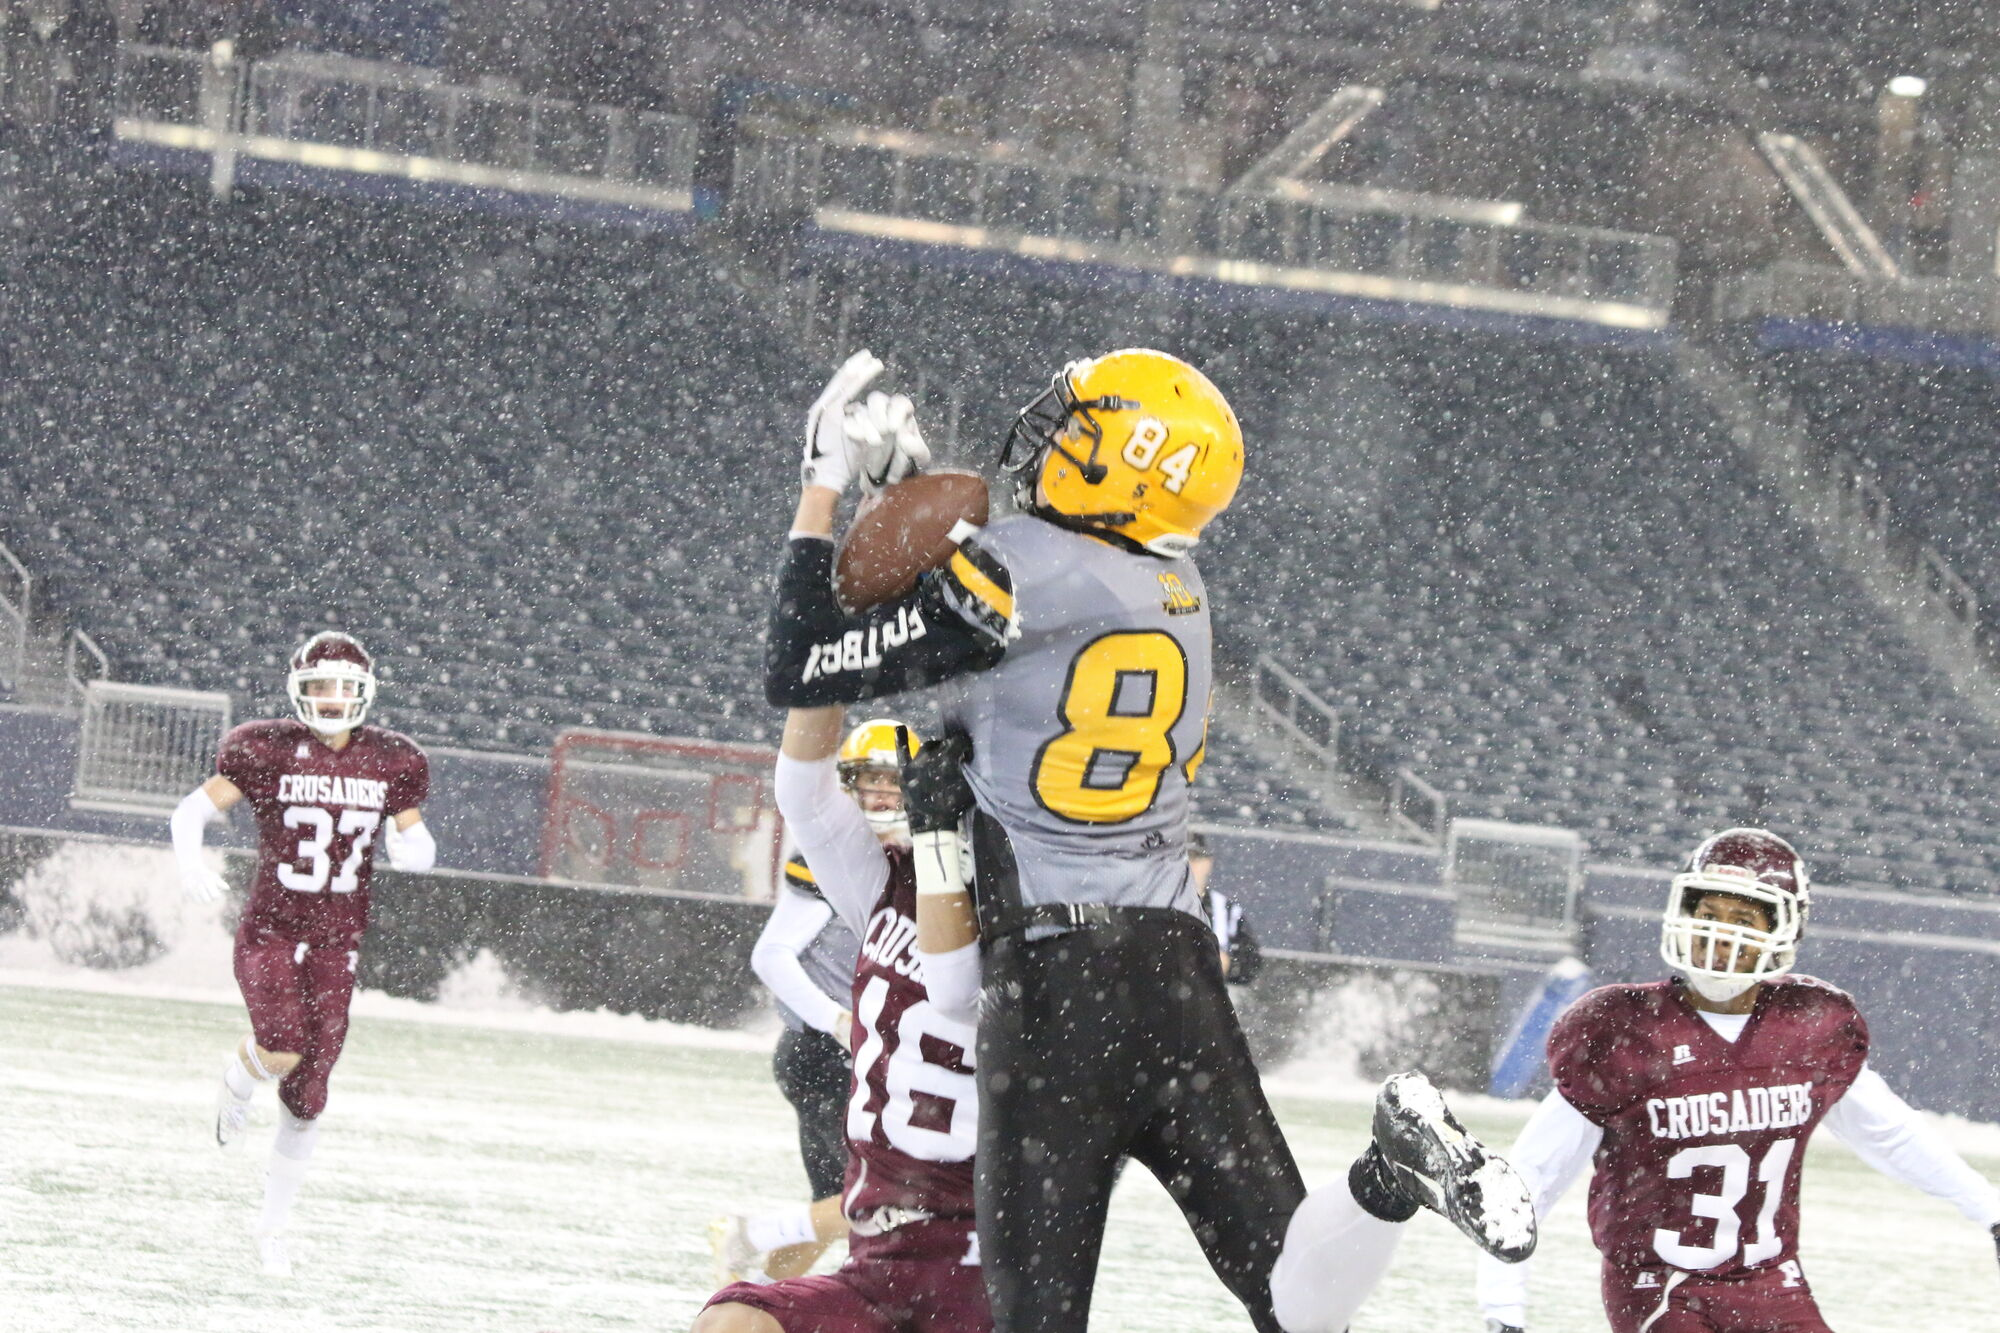 Jayden Martens, hauling down a pass from Sawyer Thiessen in the WHSFL final last fall, could be catching balls from Thiessen one day in a Bisons uniform.